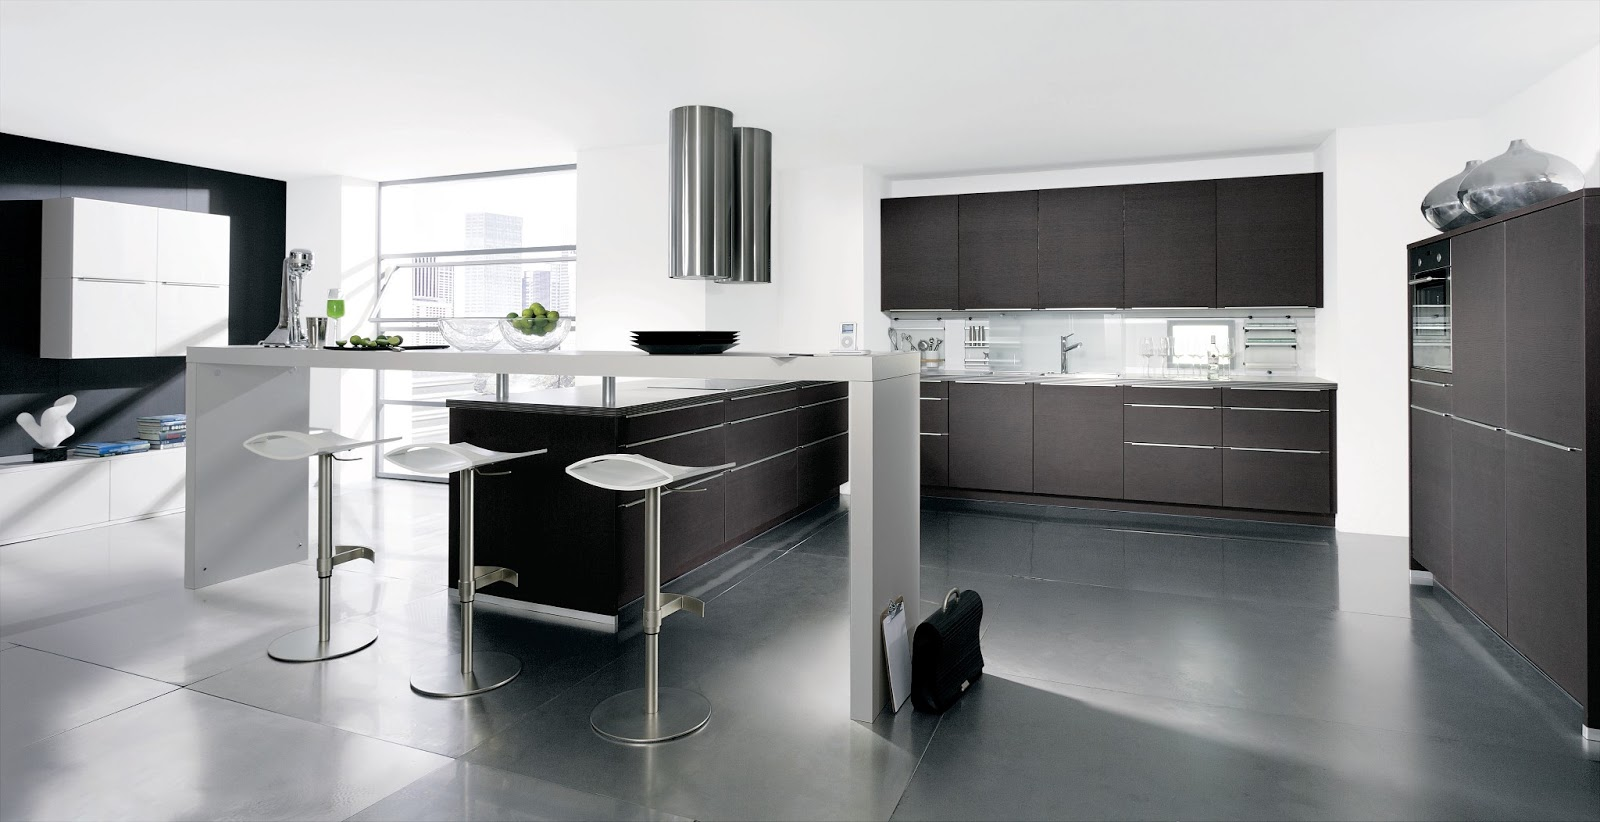 Separation cuisine americaine et salon for Cuisine americaine moderne design